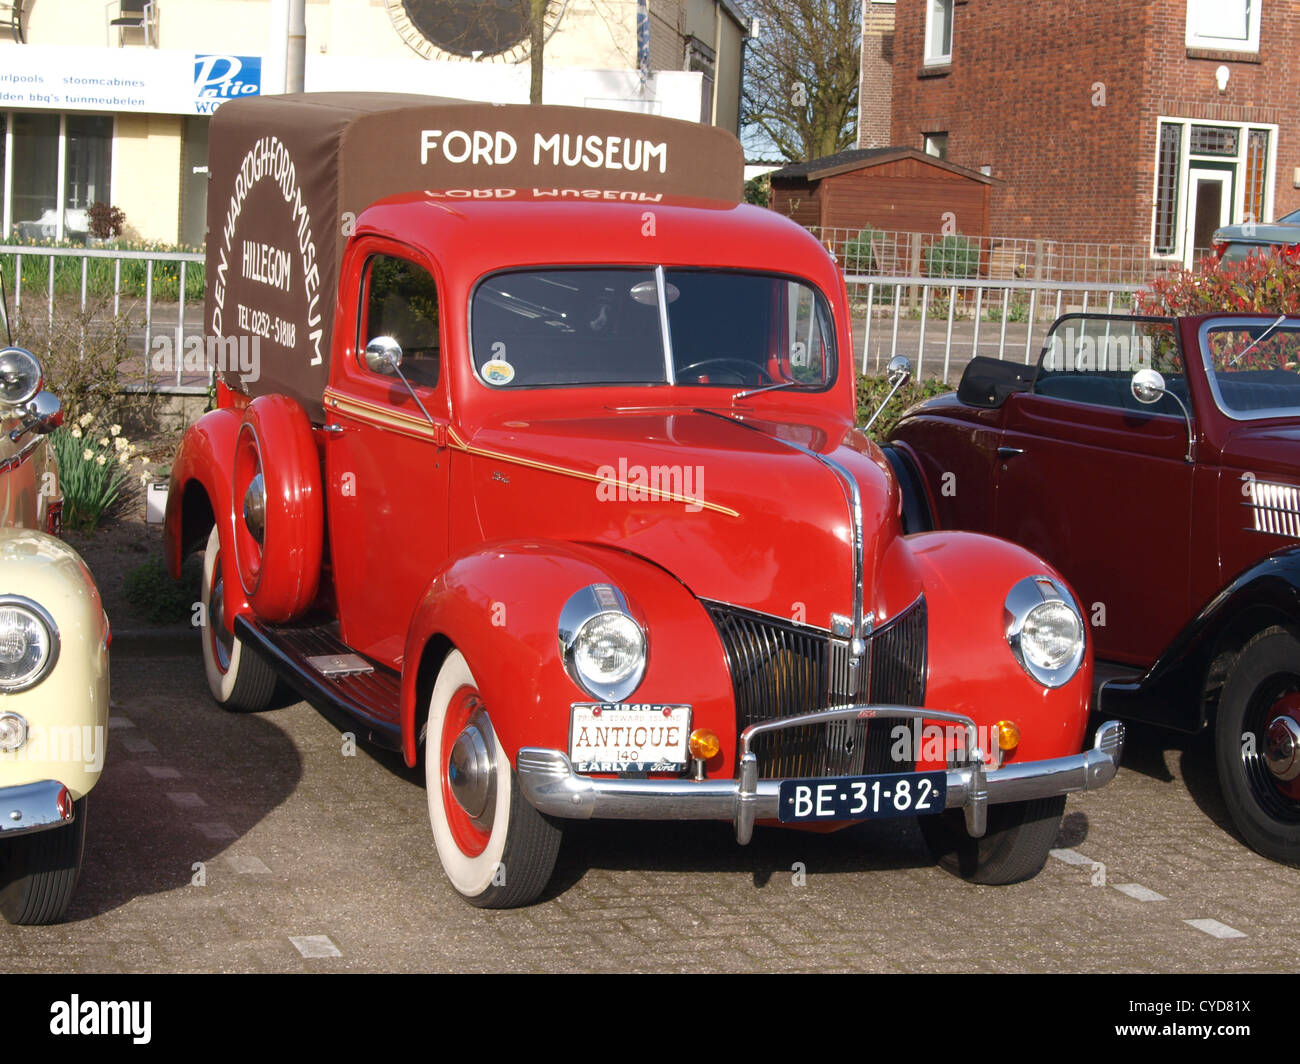 Ford 8 Cars Stock Photos & Ford 8 Cars Stock Images - Alamy